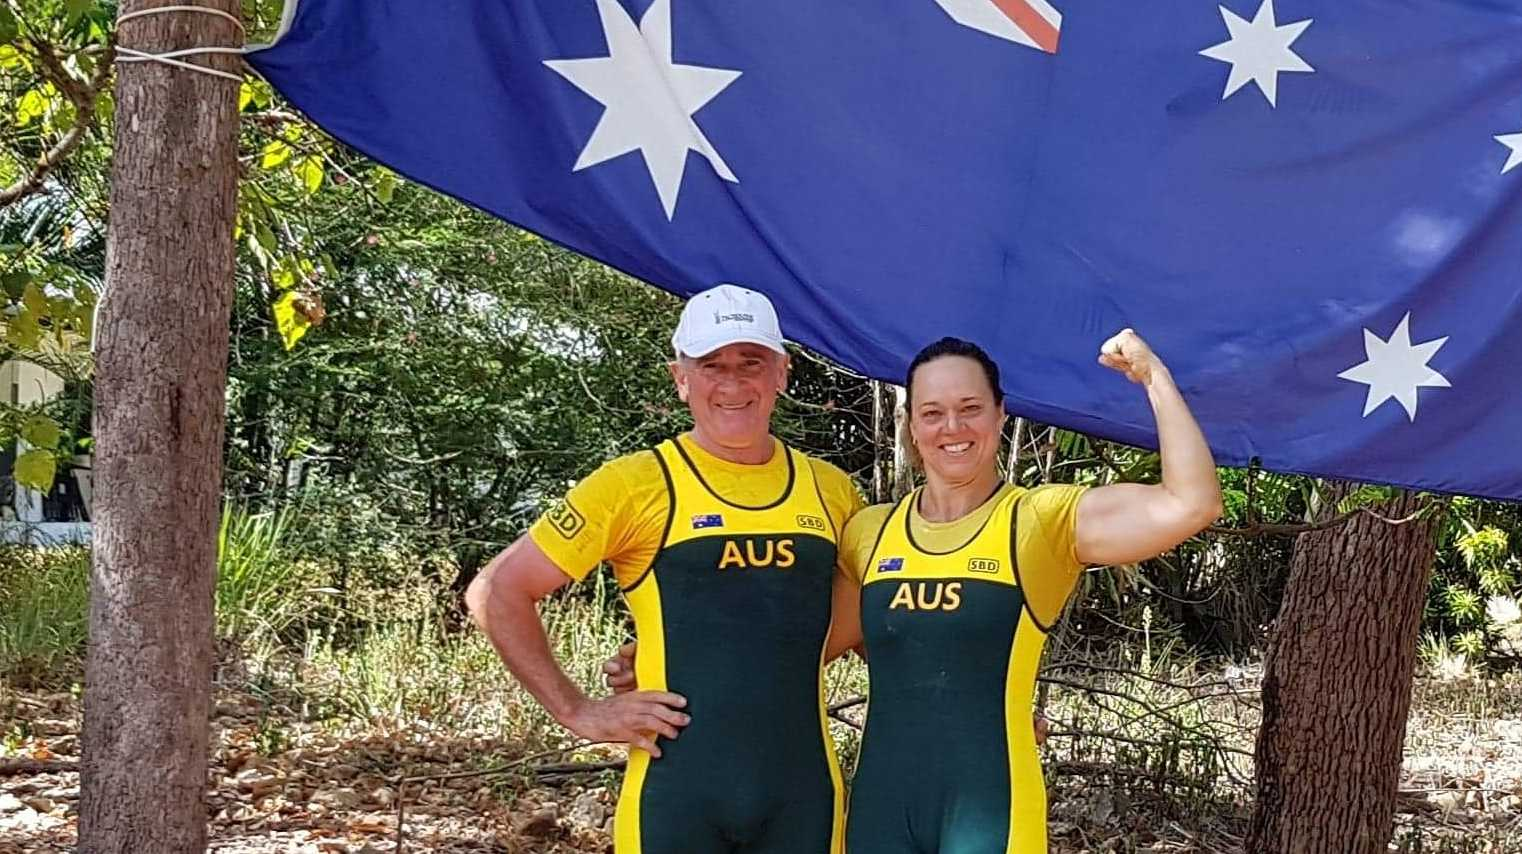 Rod Wecker and Leanne Knox will compete in the Asia Pacific Championships this weekend.